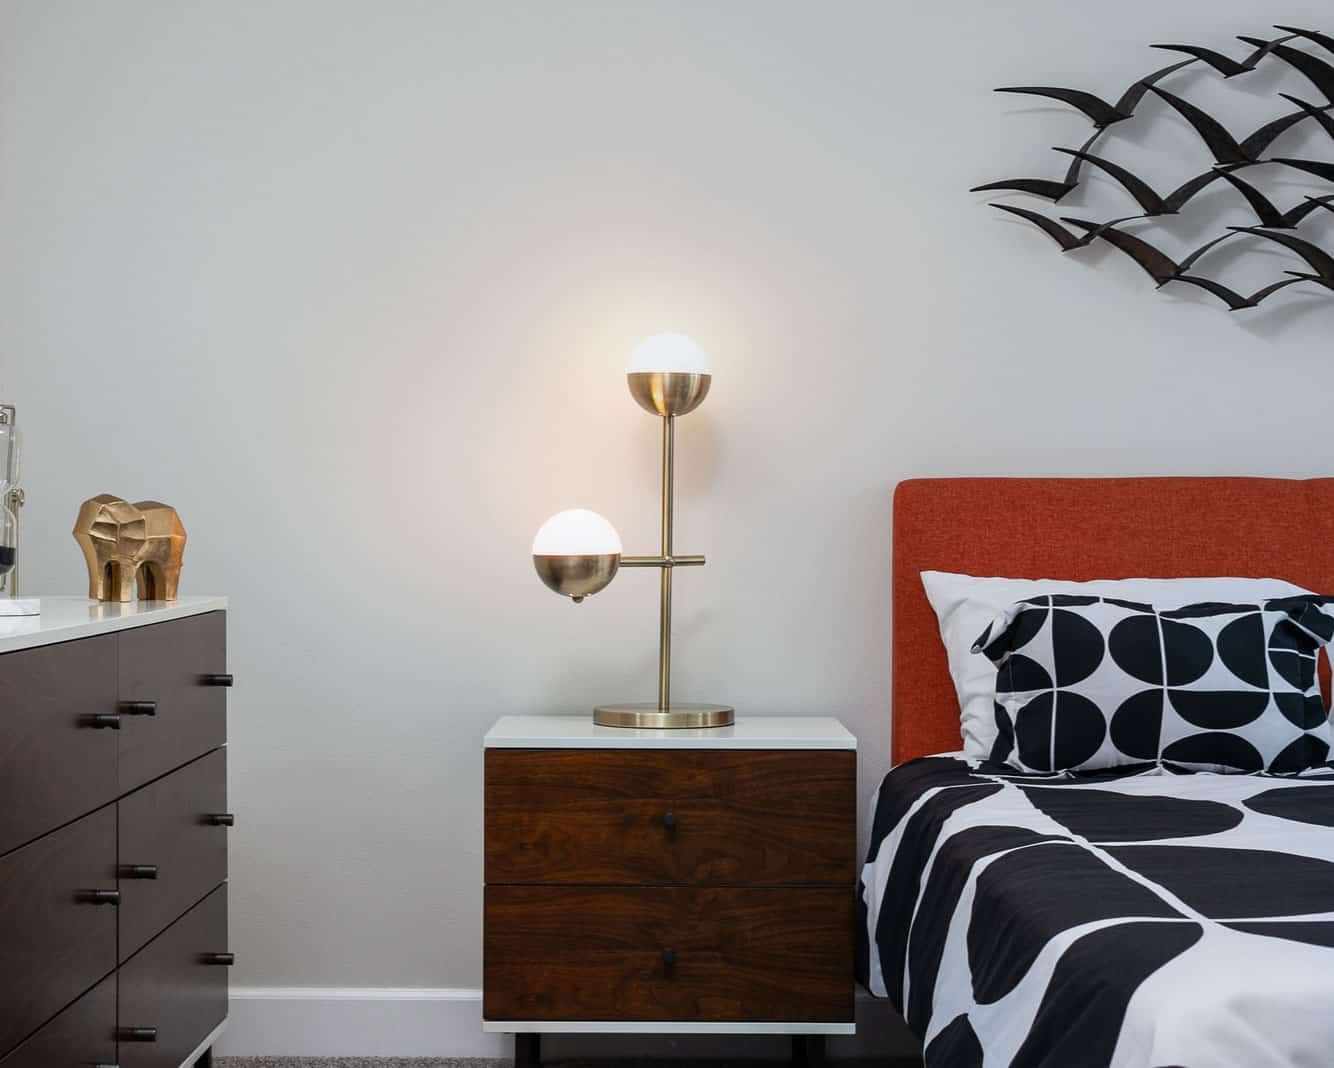 Bedside table with lamp between dresser and bed